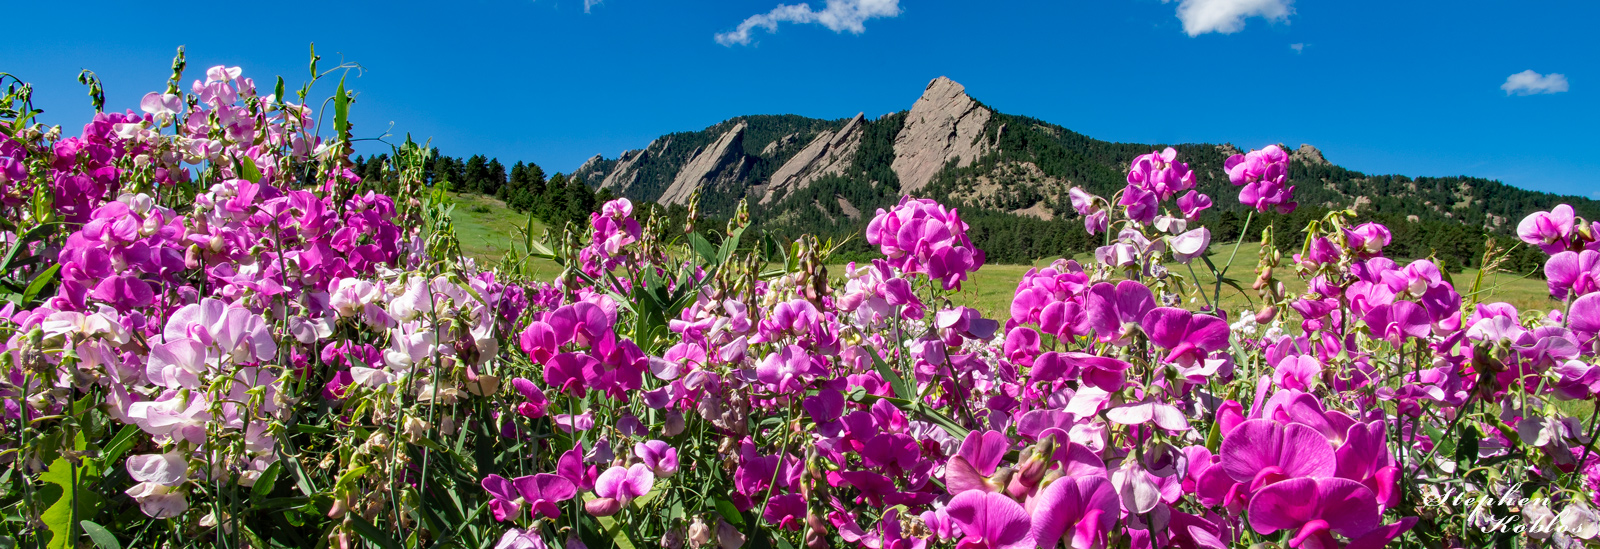 Wild sweet peas below the Flatirons.  Limited Edition of 100